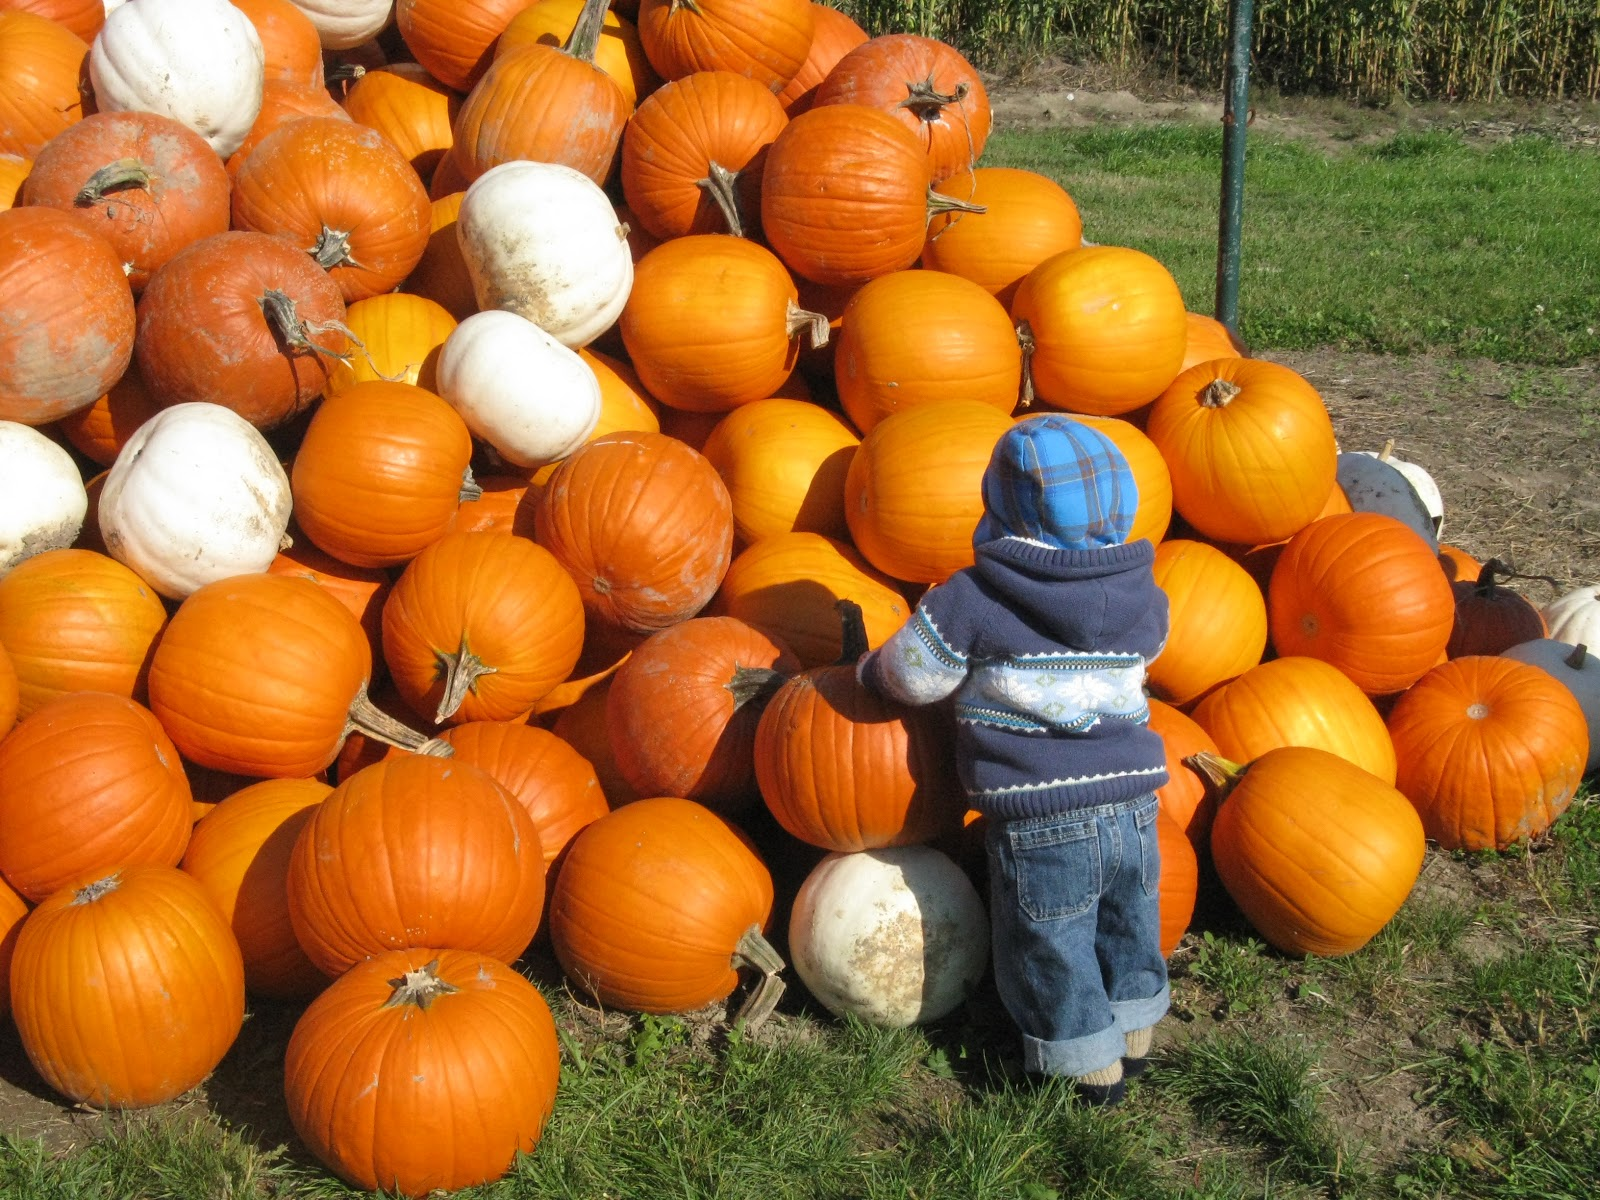 The Pumpkin Patch and Carving Ideas - The Best of this Life